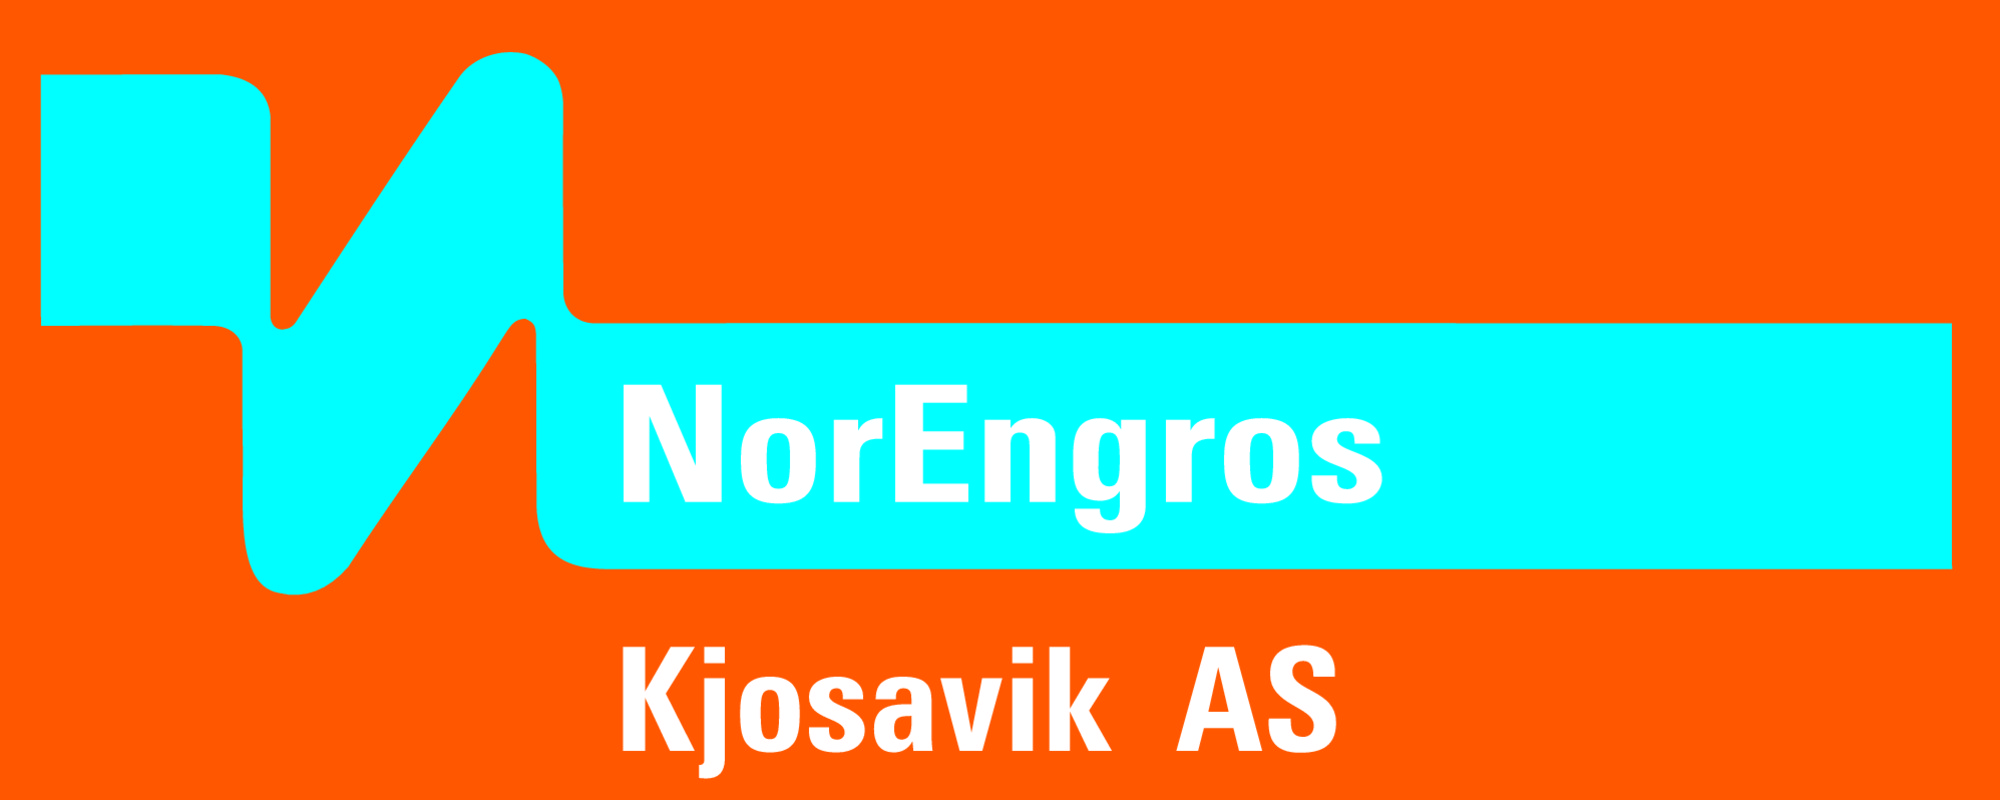 NorEngros Kjosavik AS - Oilers